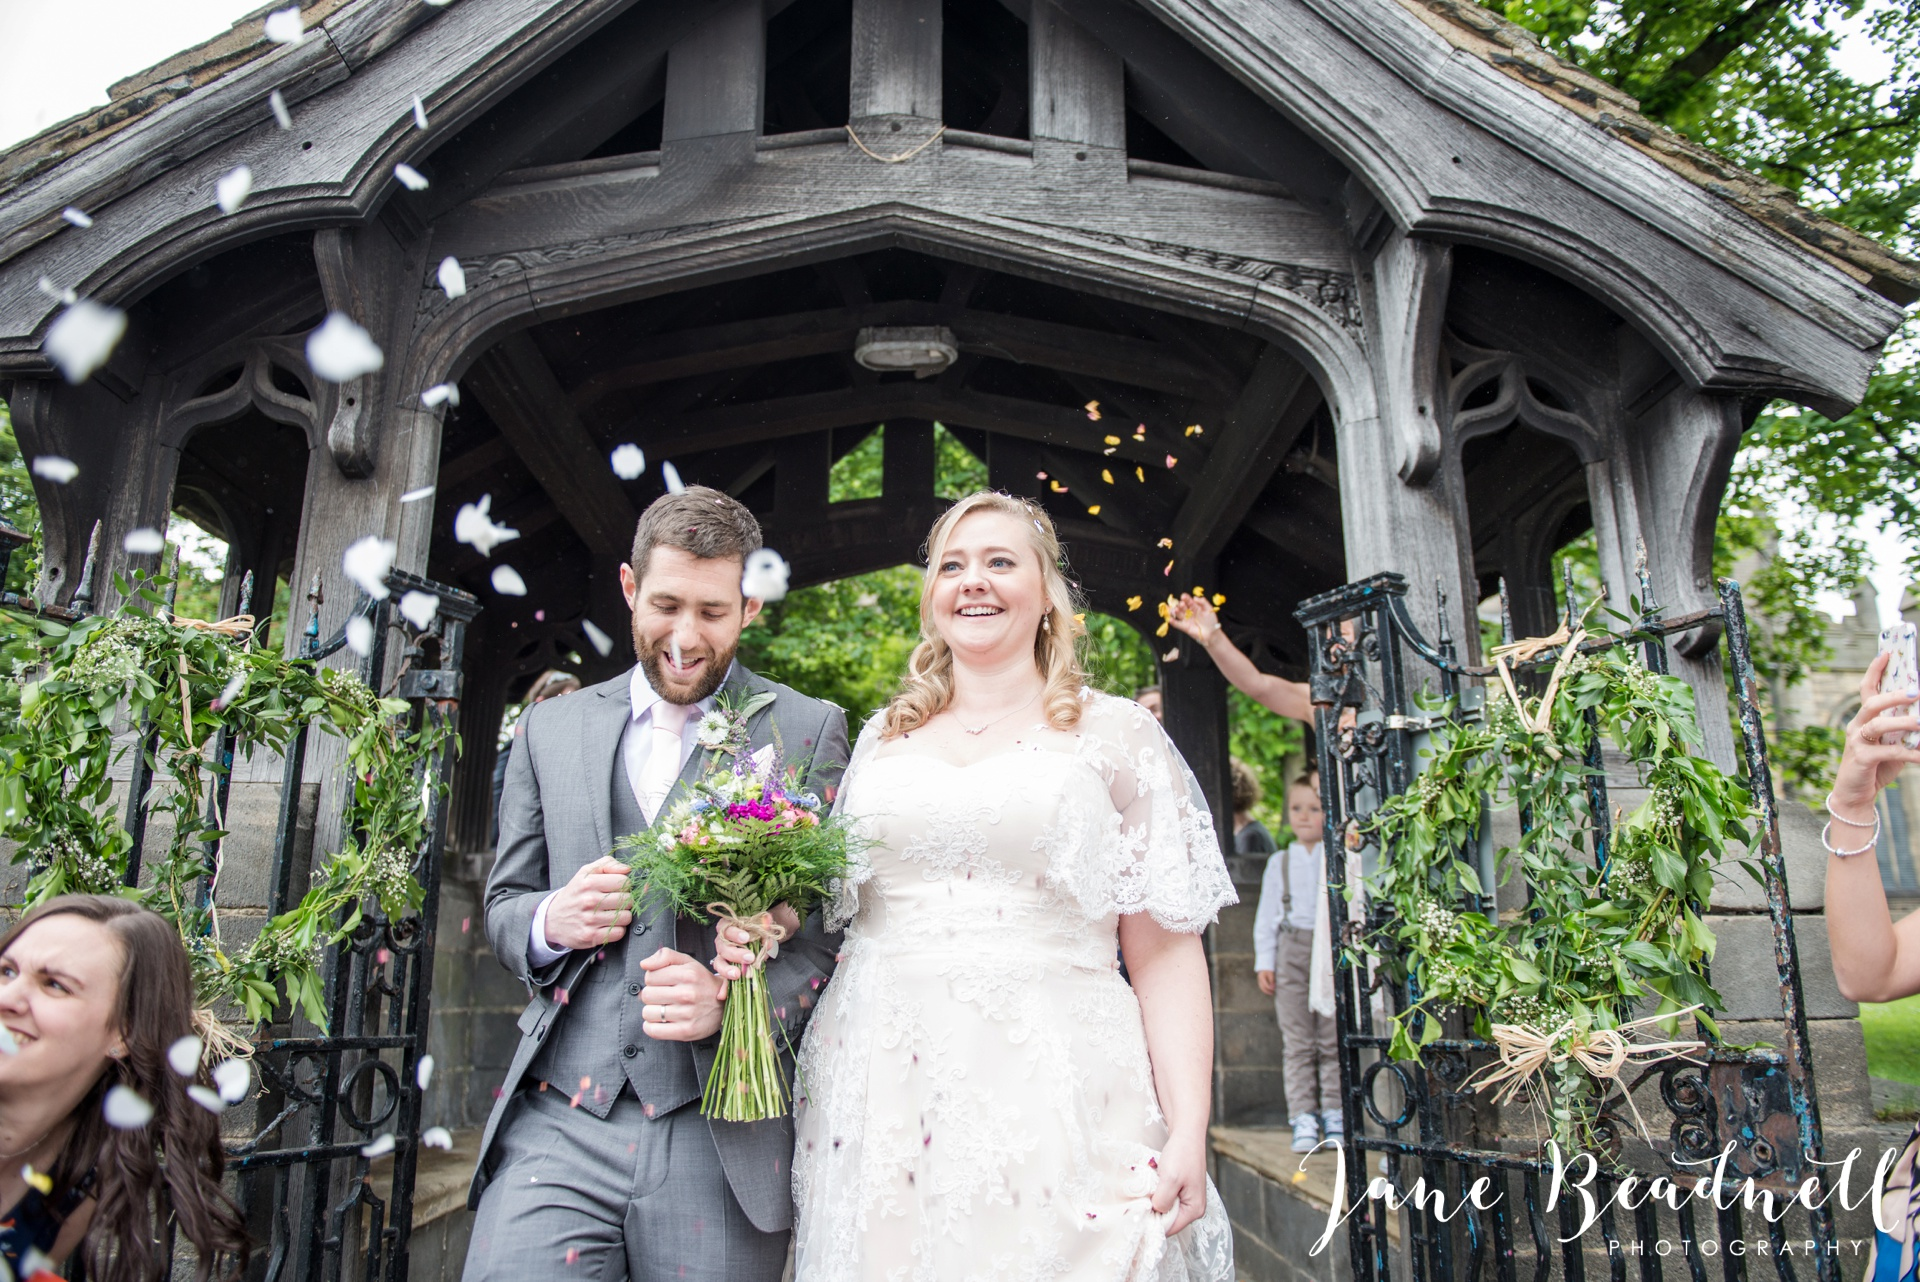 Yorkshire Wedding Photography the cheerful Chilli Barn Wedding by Jane Beadnell Photography_0095